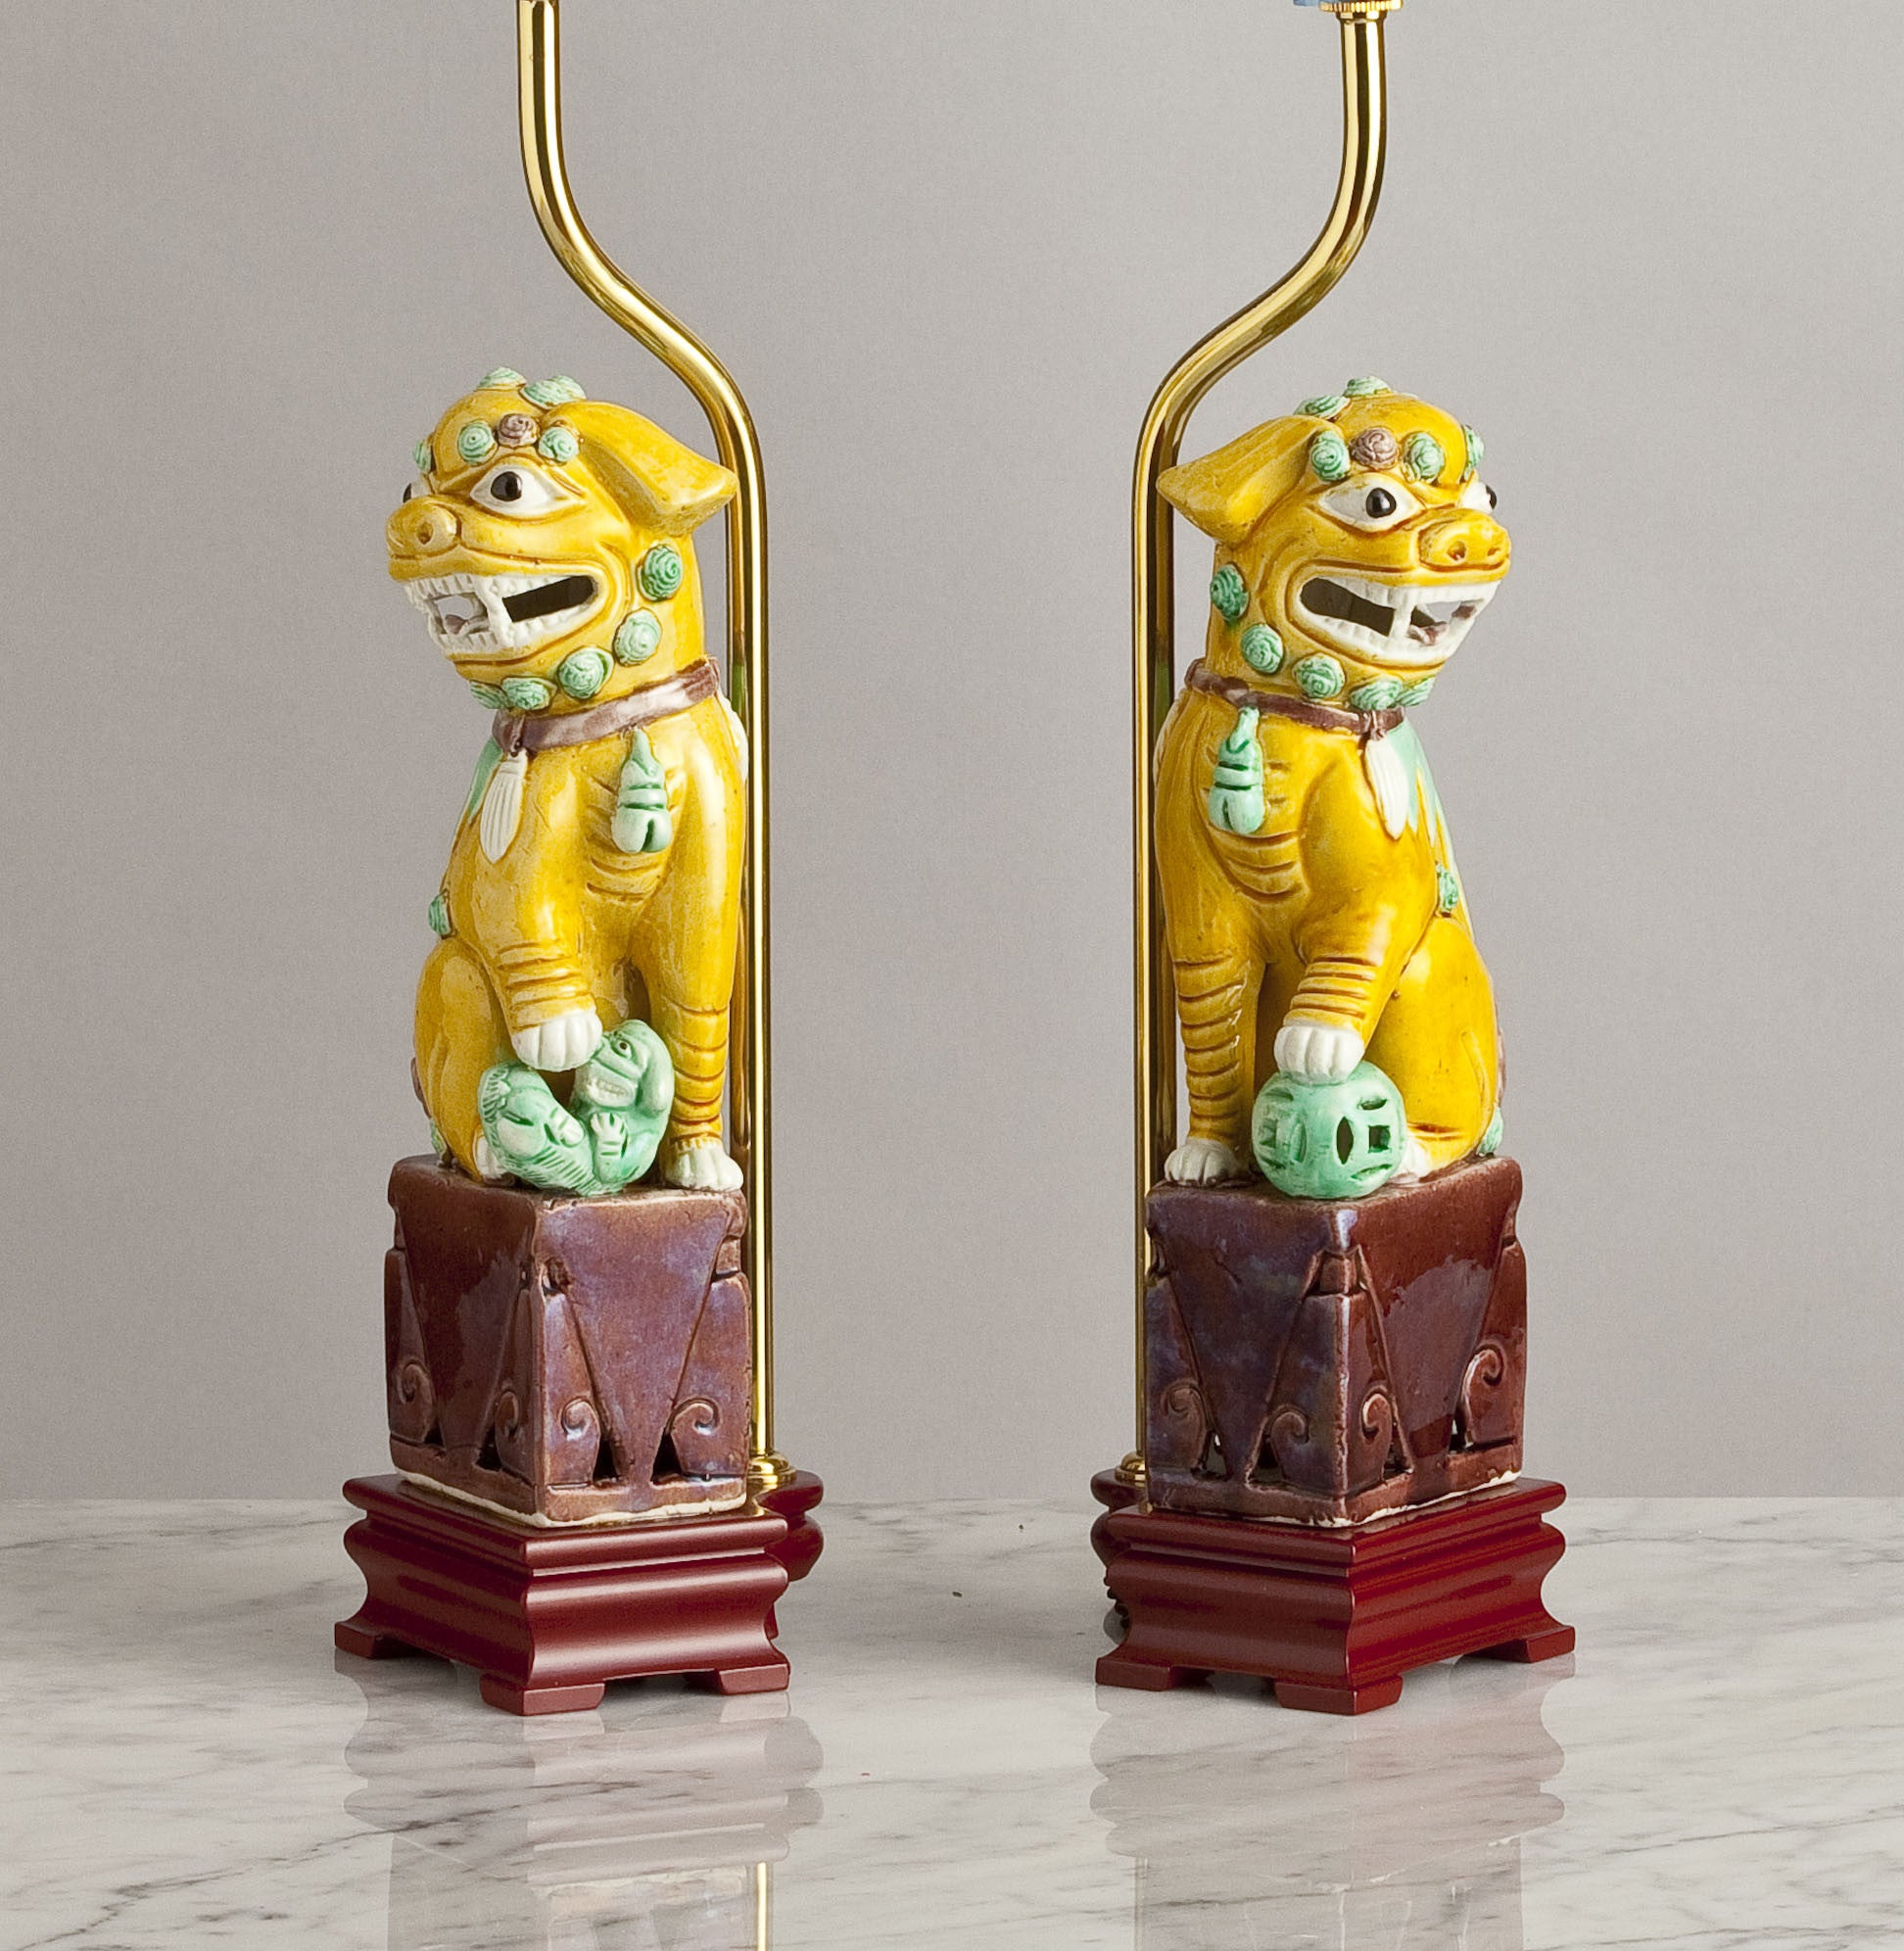 F093  A Decorative Pair of Vintage, Chinese Bisque Lamps As Lions of Fo - Circa 1950